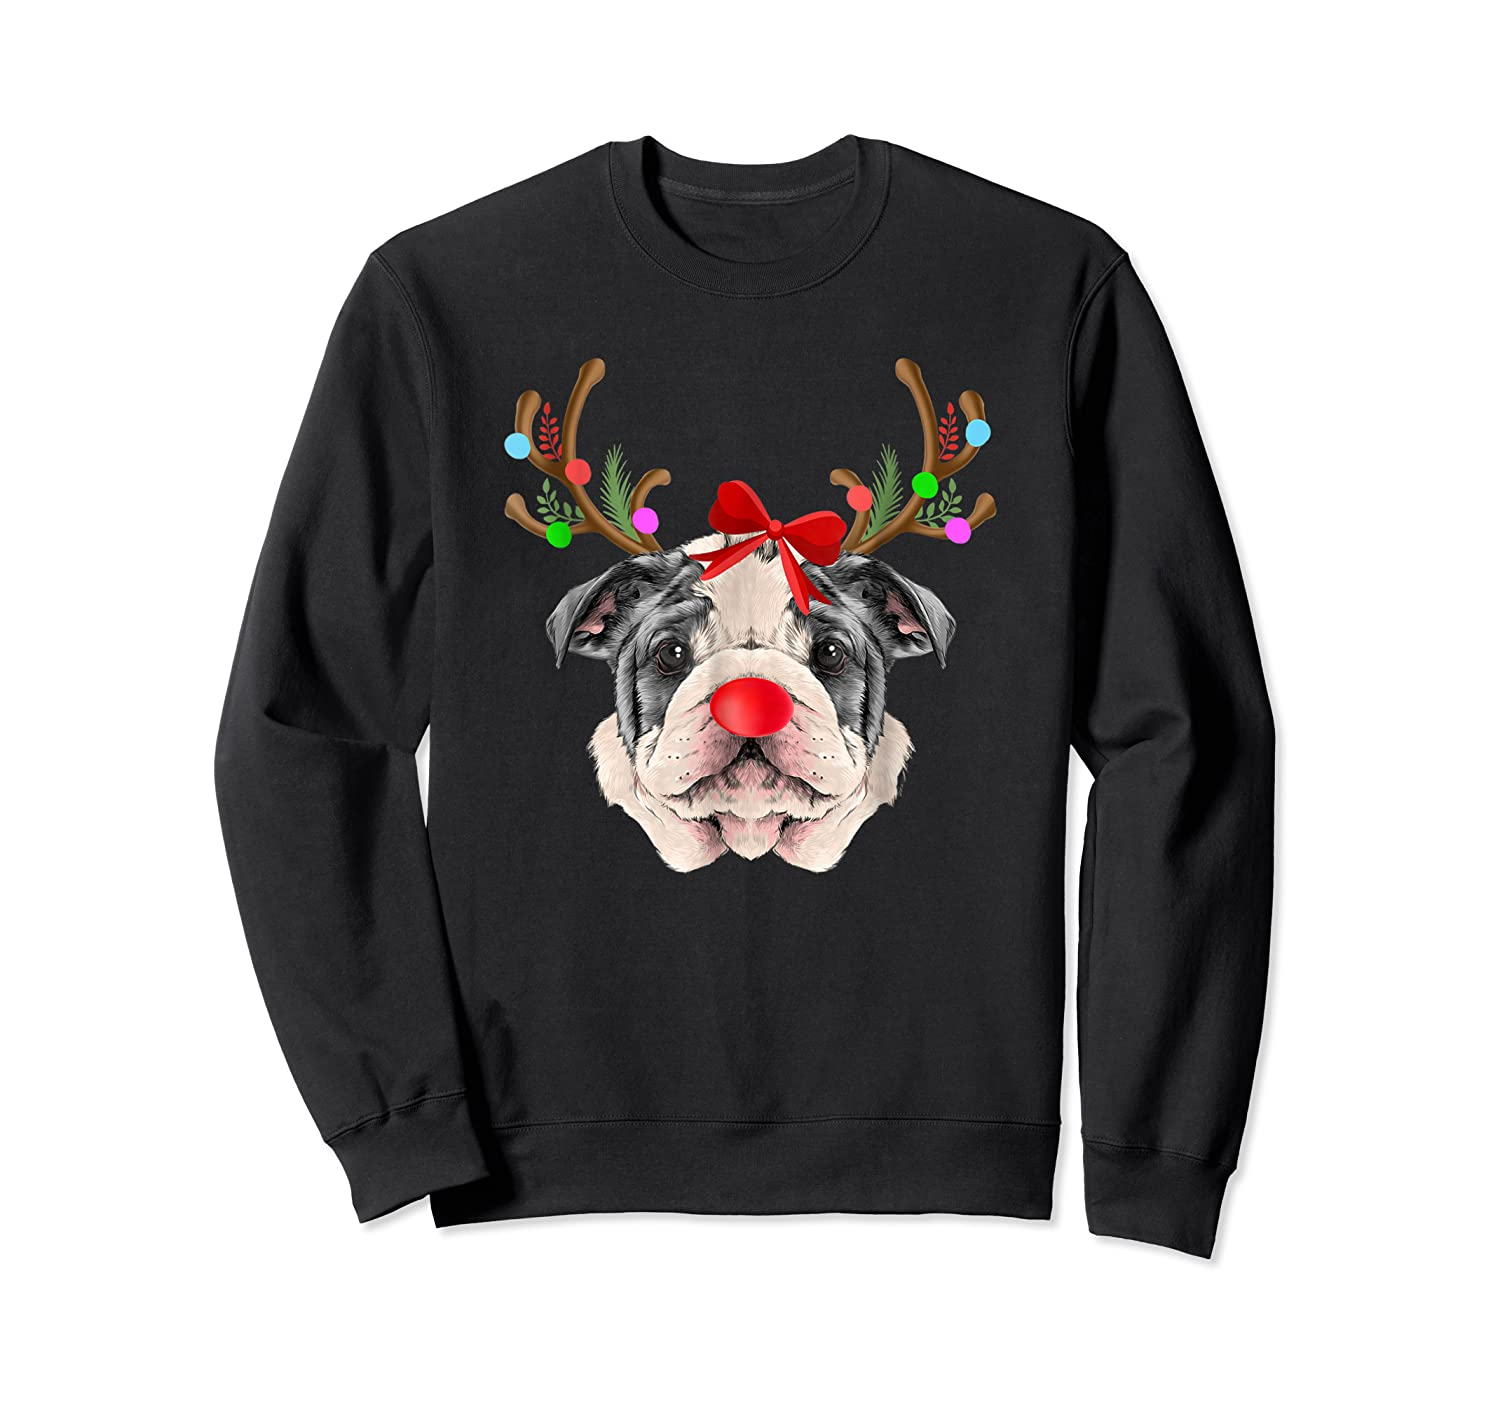 Funny Bulldogs With Antlers Light Christmas Shirts Crewneck Sweater